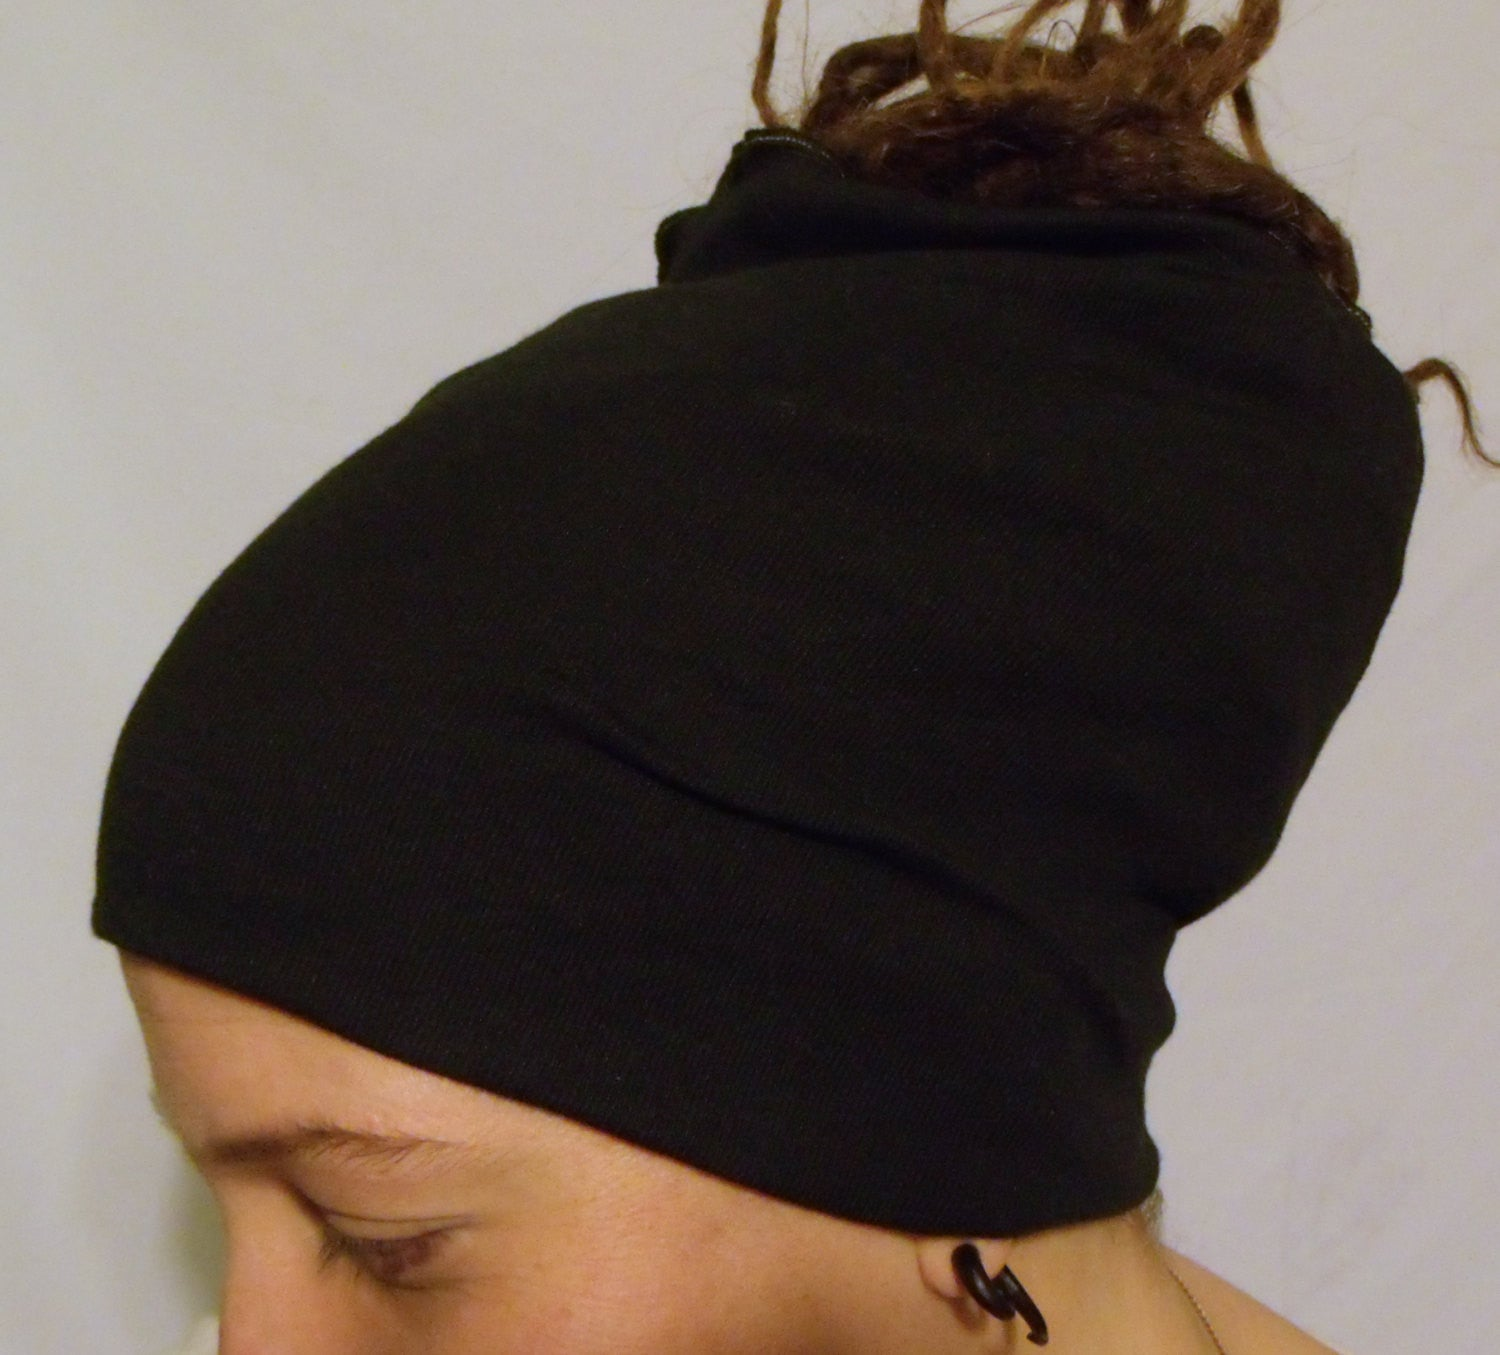 Simple Roots Organic XL Head Hugger